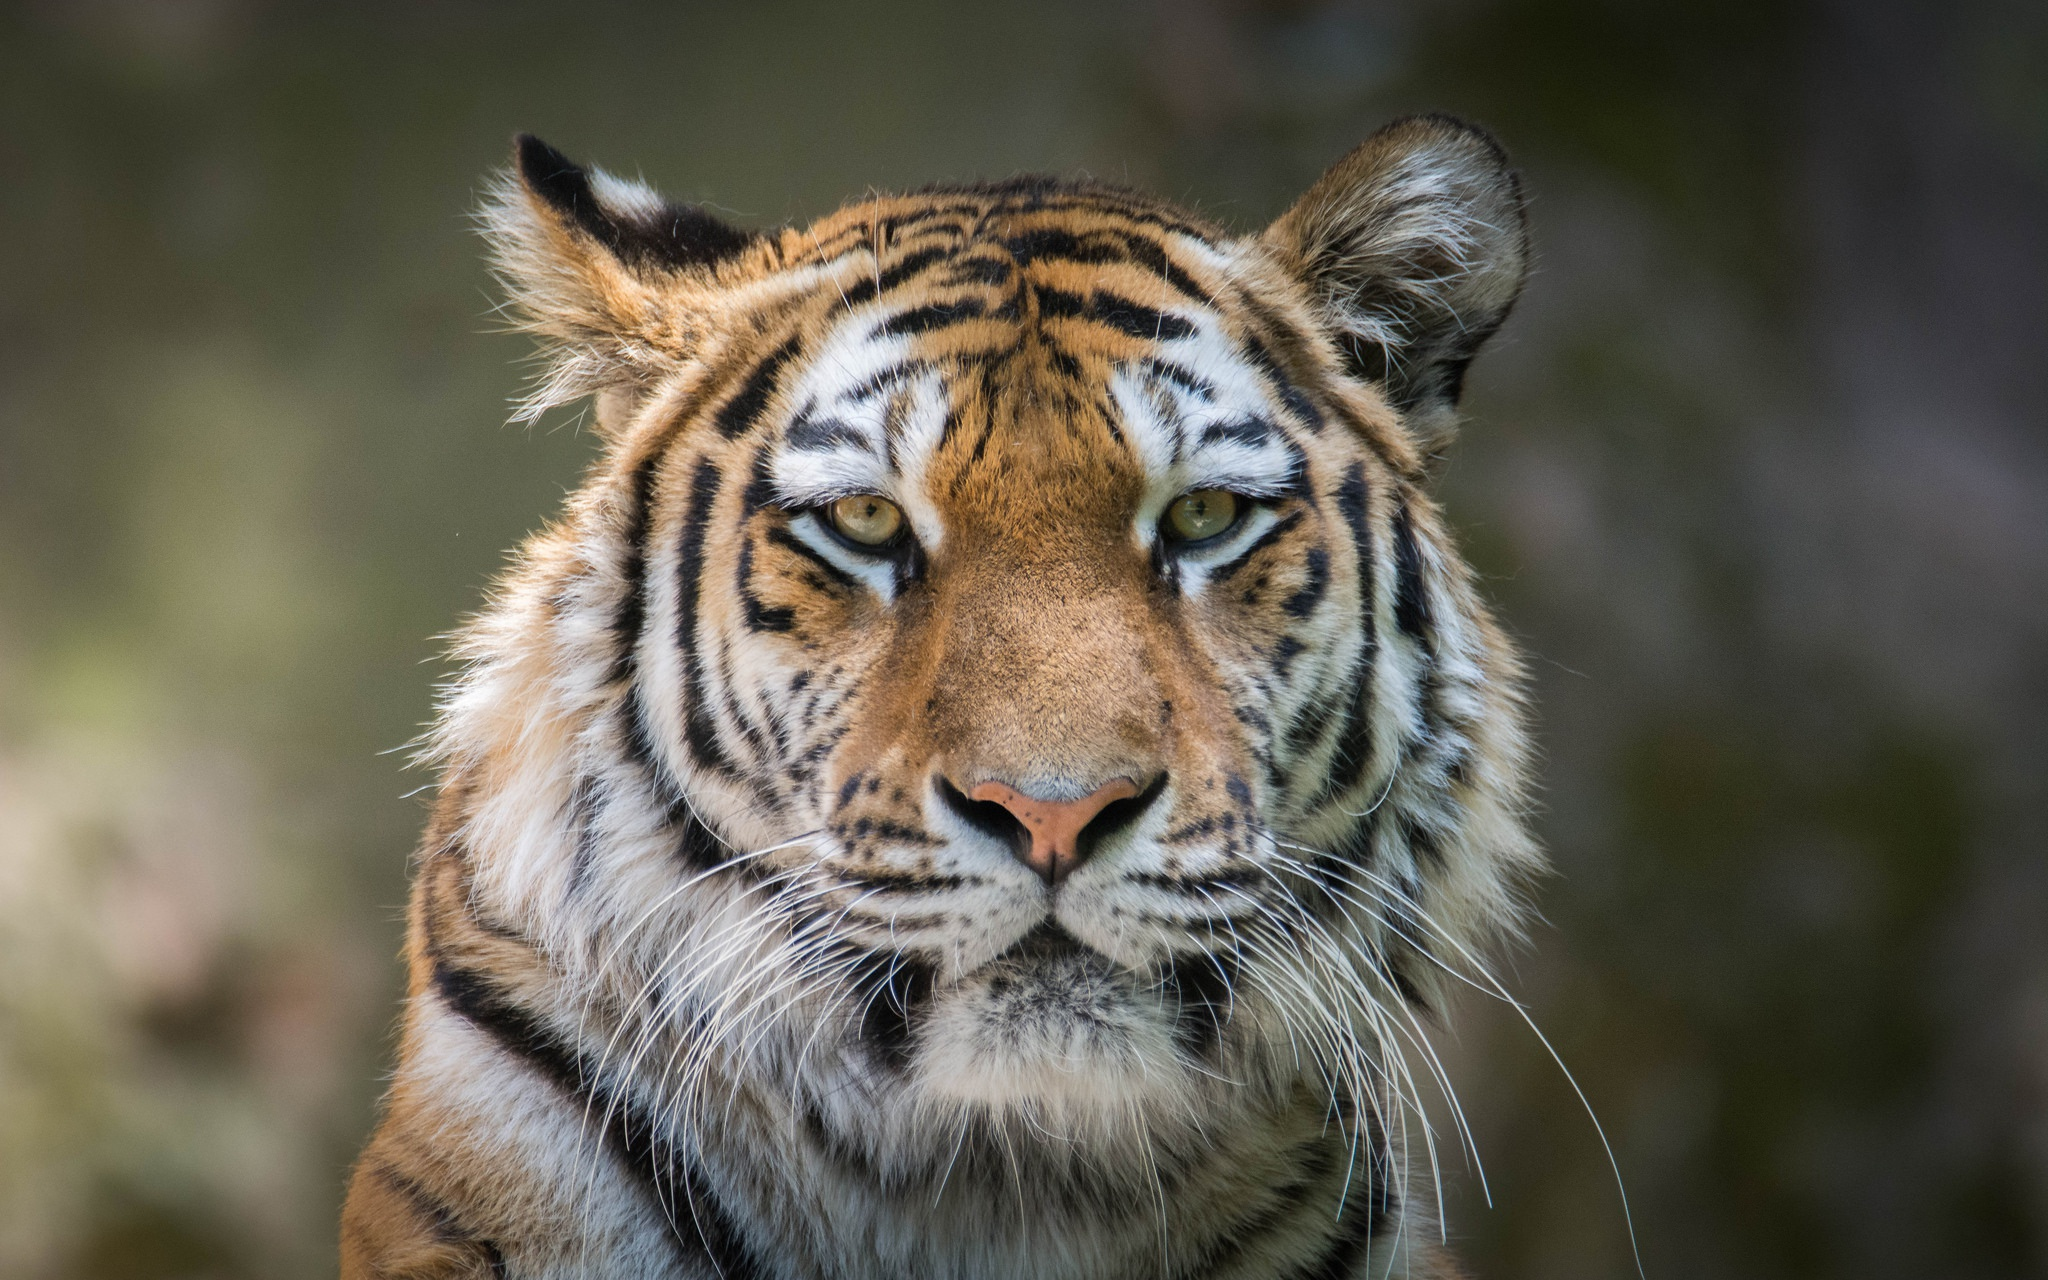 tiger 4k hd, hd animals, 4k wallpapers, images, backgrounds, photos